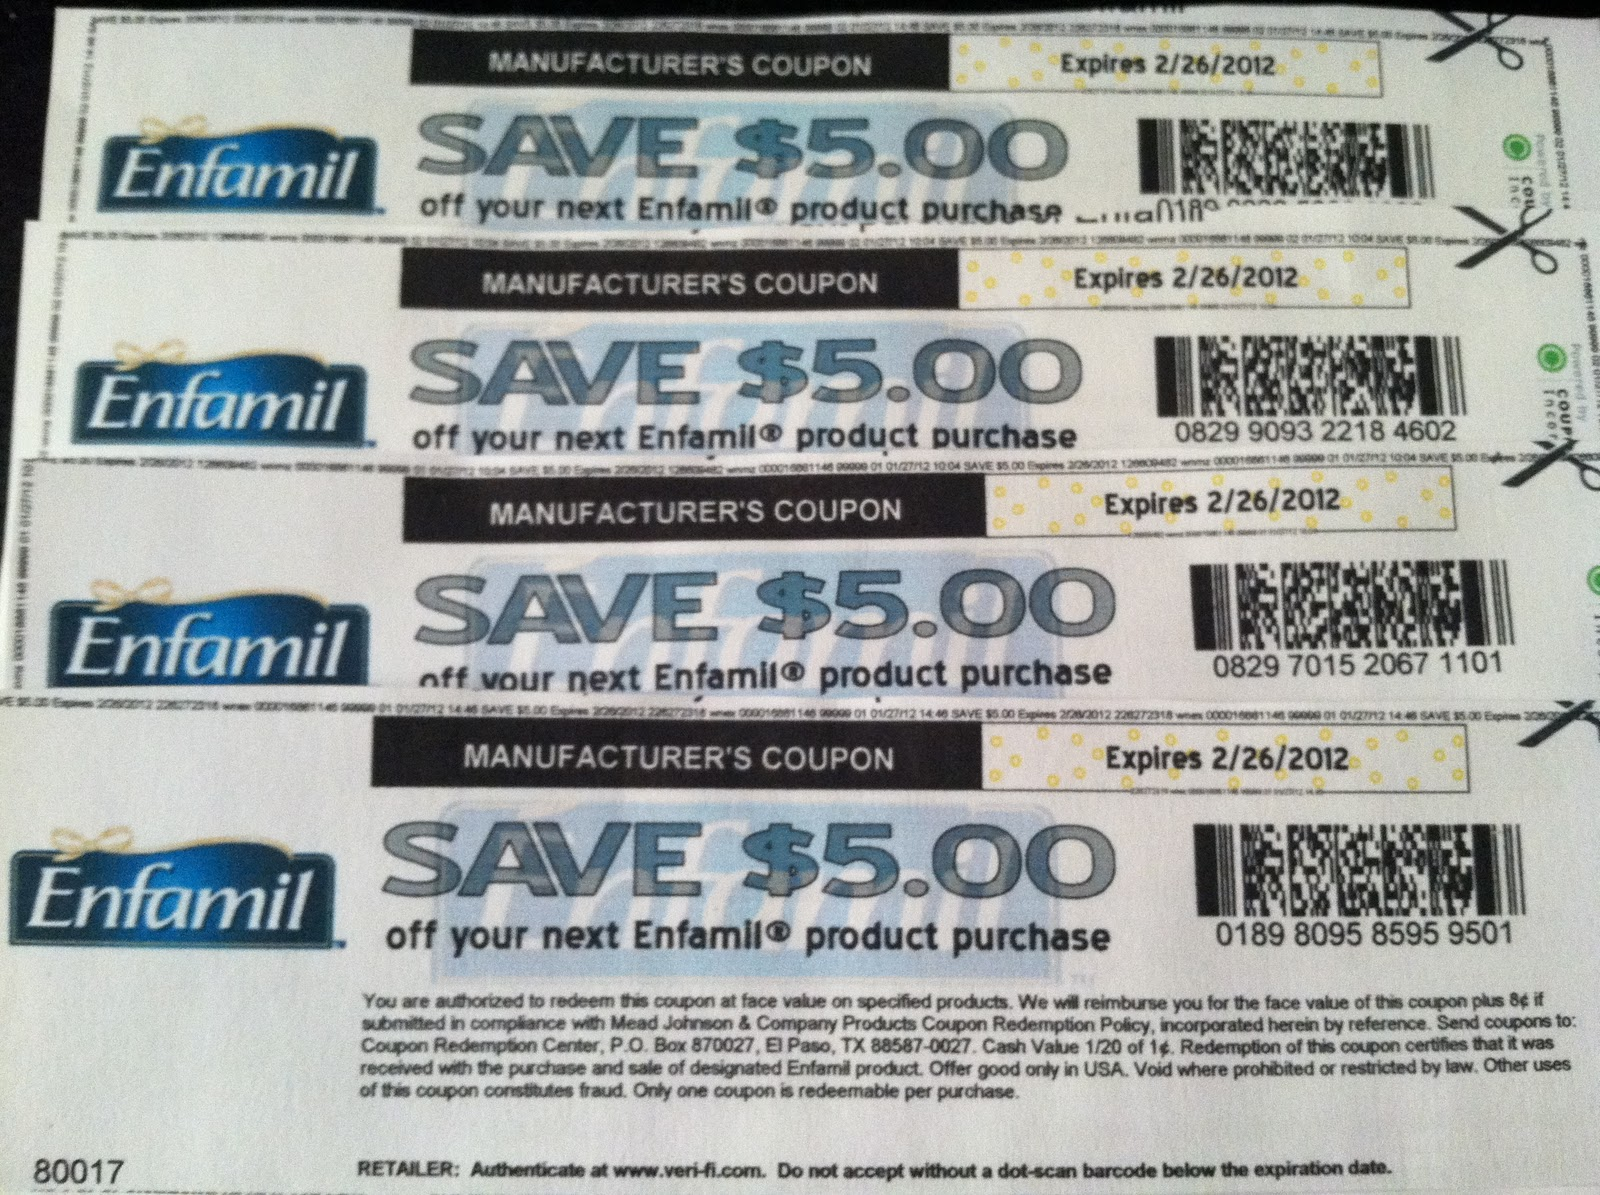 image relating to Enfamil Printable Coupons called Enfamil nutramigen coupon codes 2018 : Victoria magic formula inside retail store